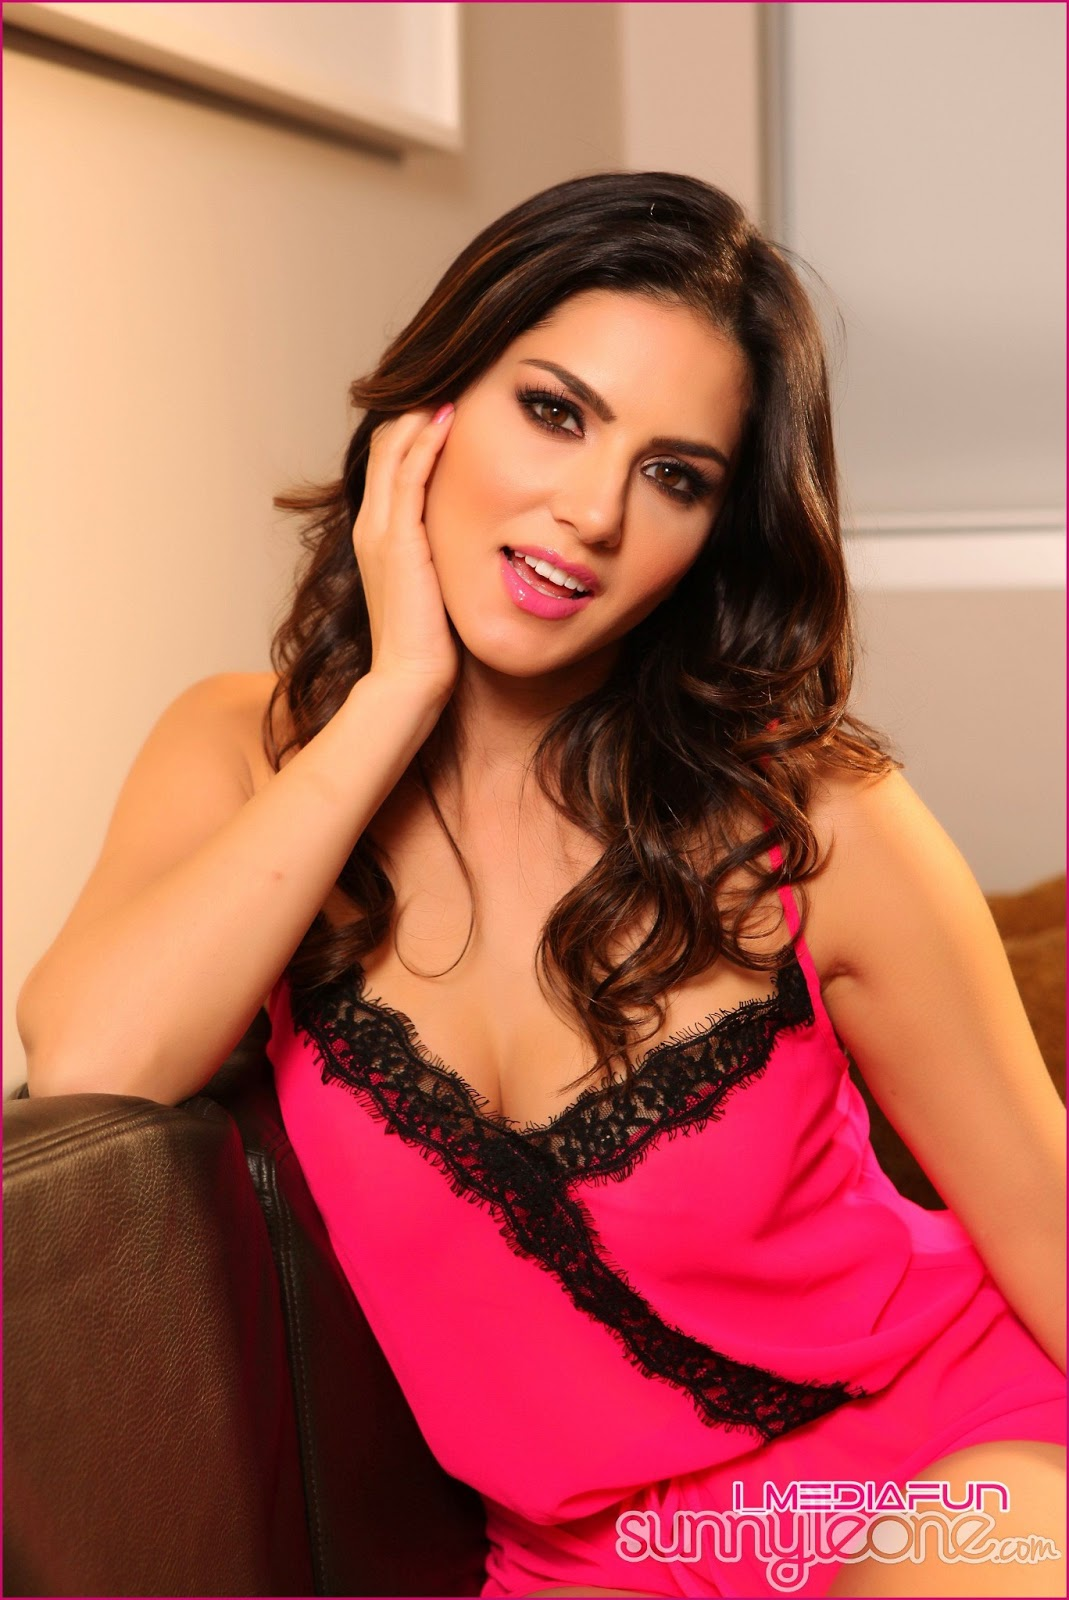 www.CelebTiger.com+Indian+Nude+Actress+Sunny+Leones+Pretty+in+Pink+(08+JUNE+13)++(2) Sunny Leone Showing Her Big Round Boobs And Juicy Pussy HQ Photo Gallery